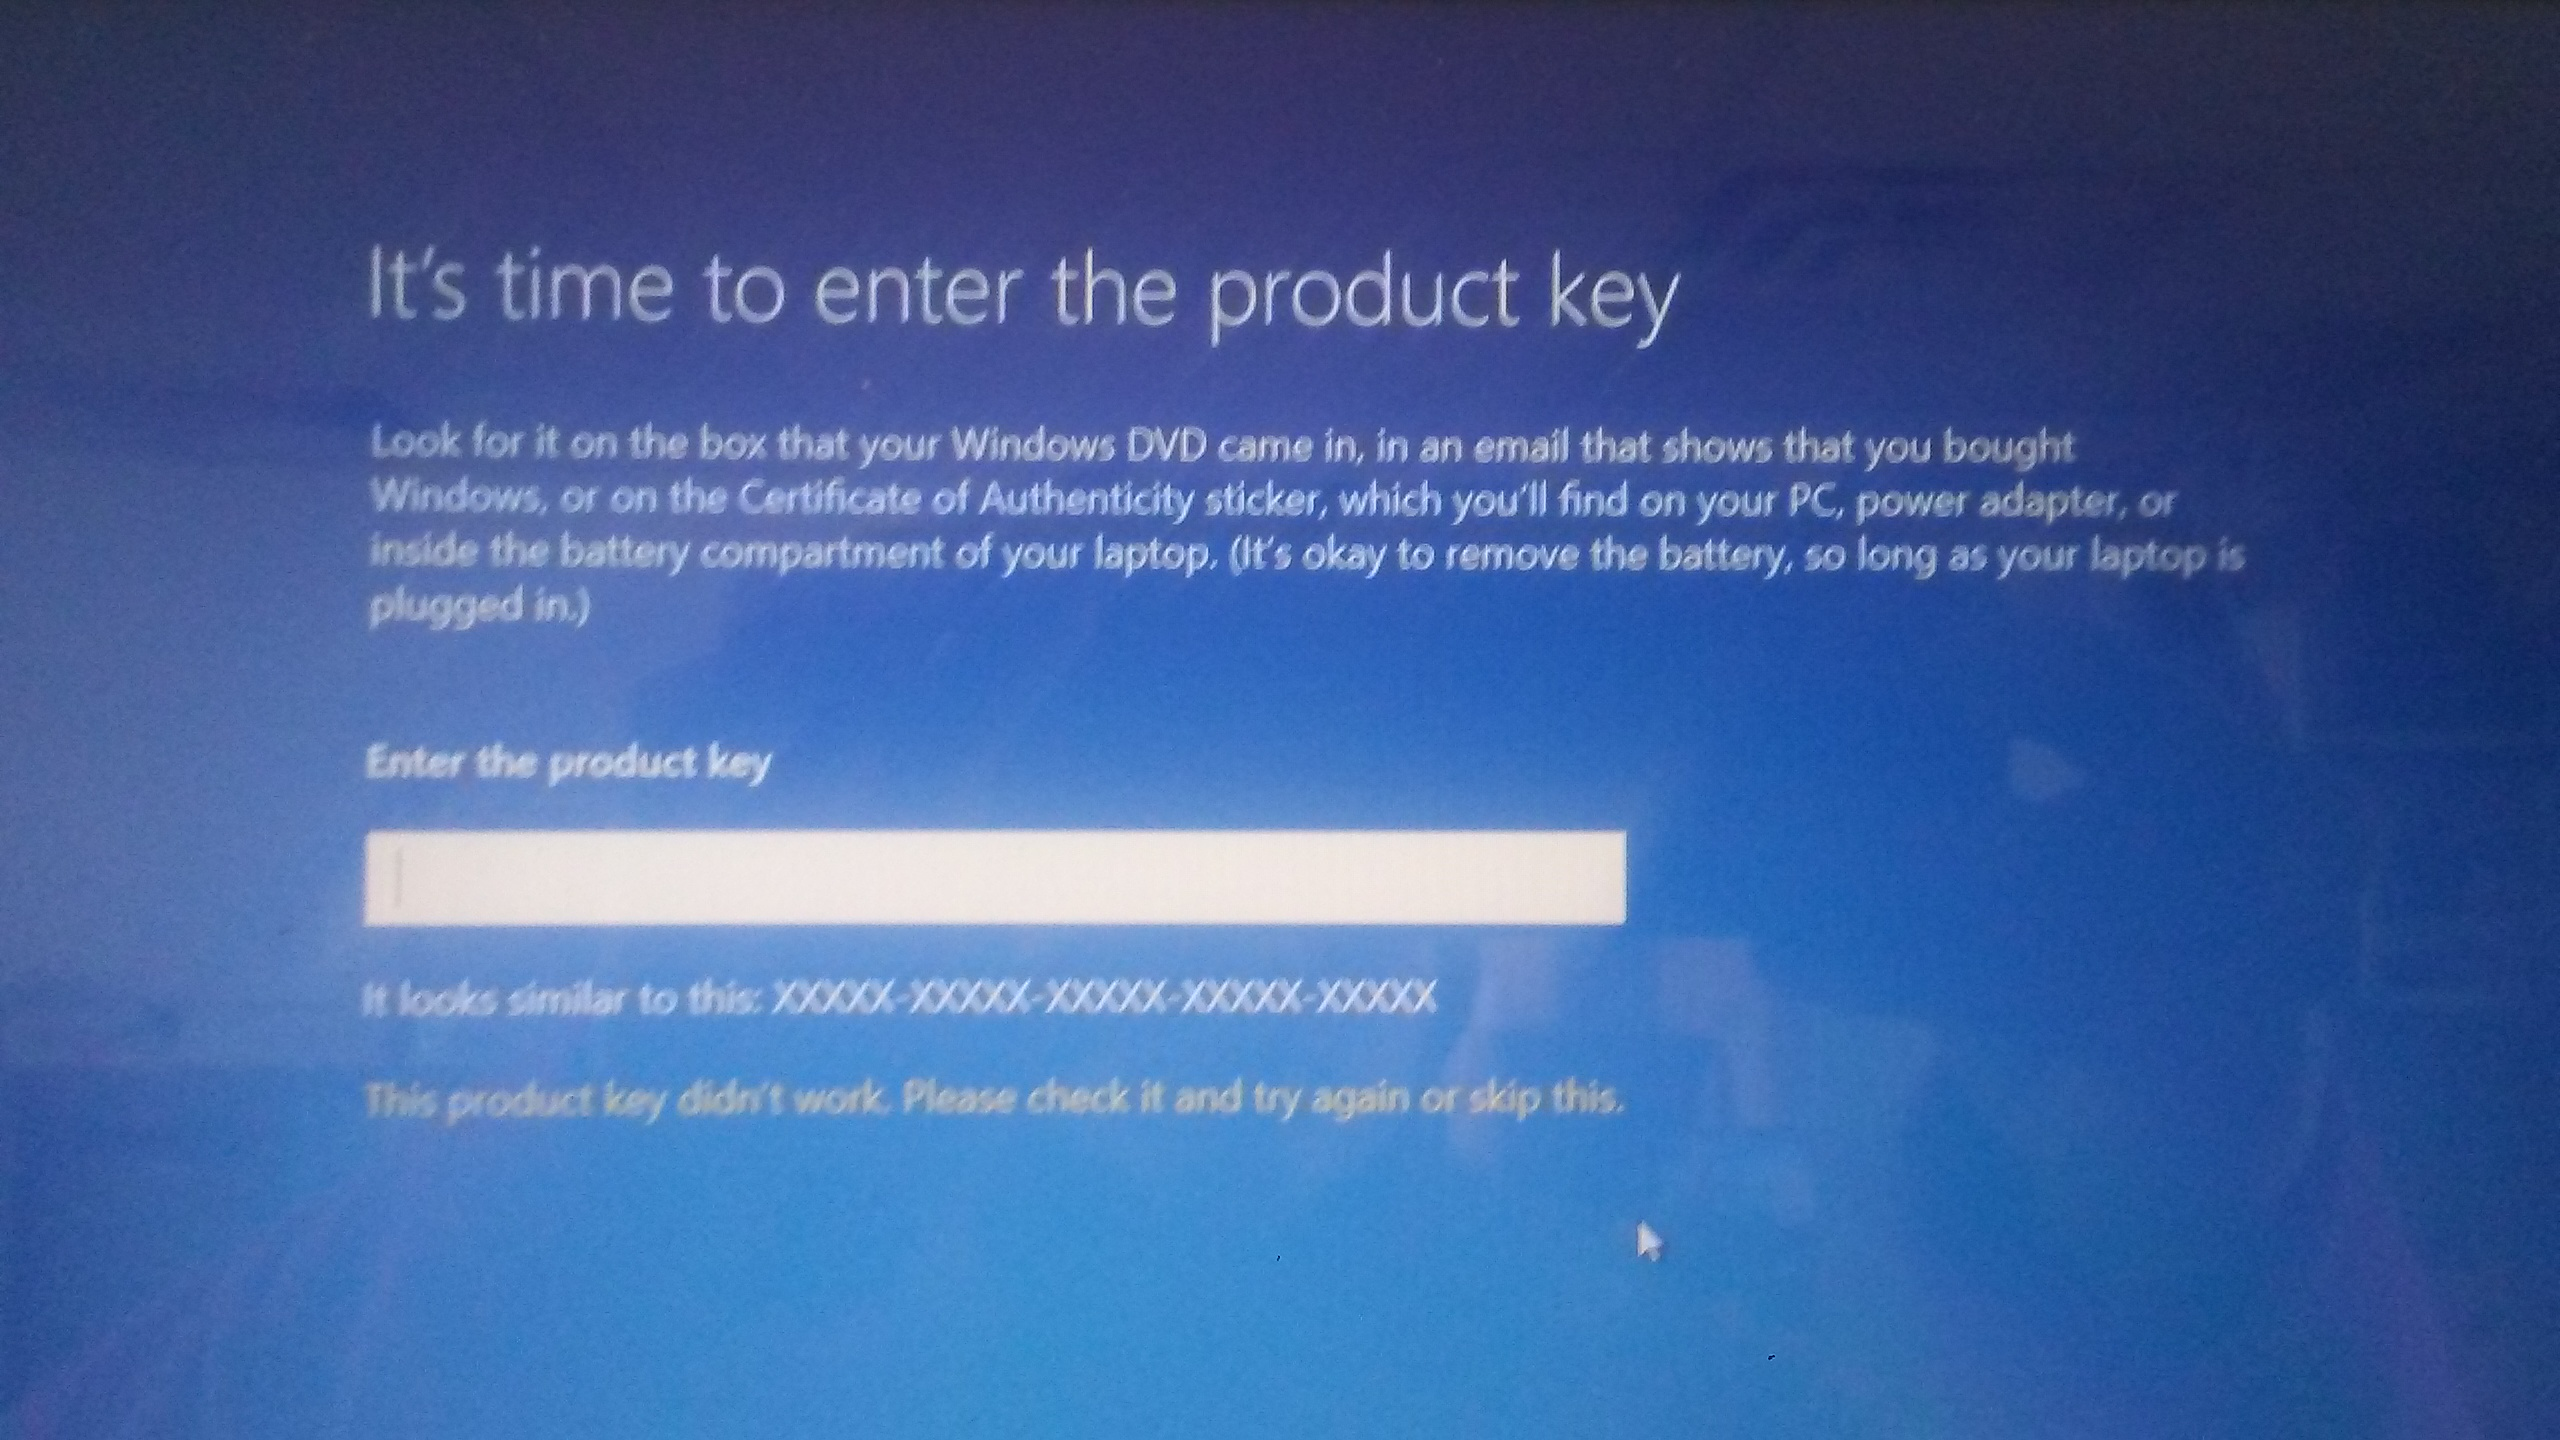 Windows 10 Product key - HP Support Community - 6485890